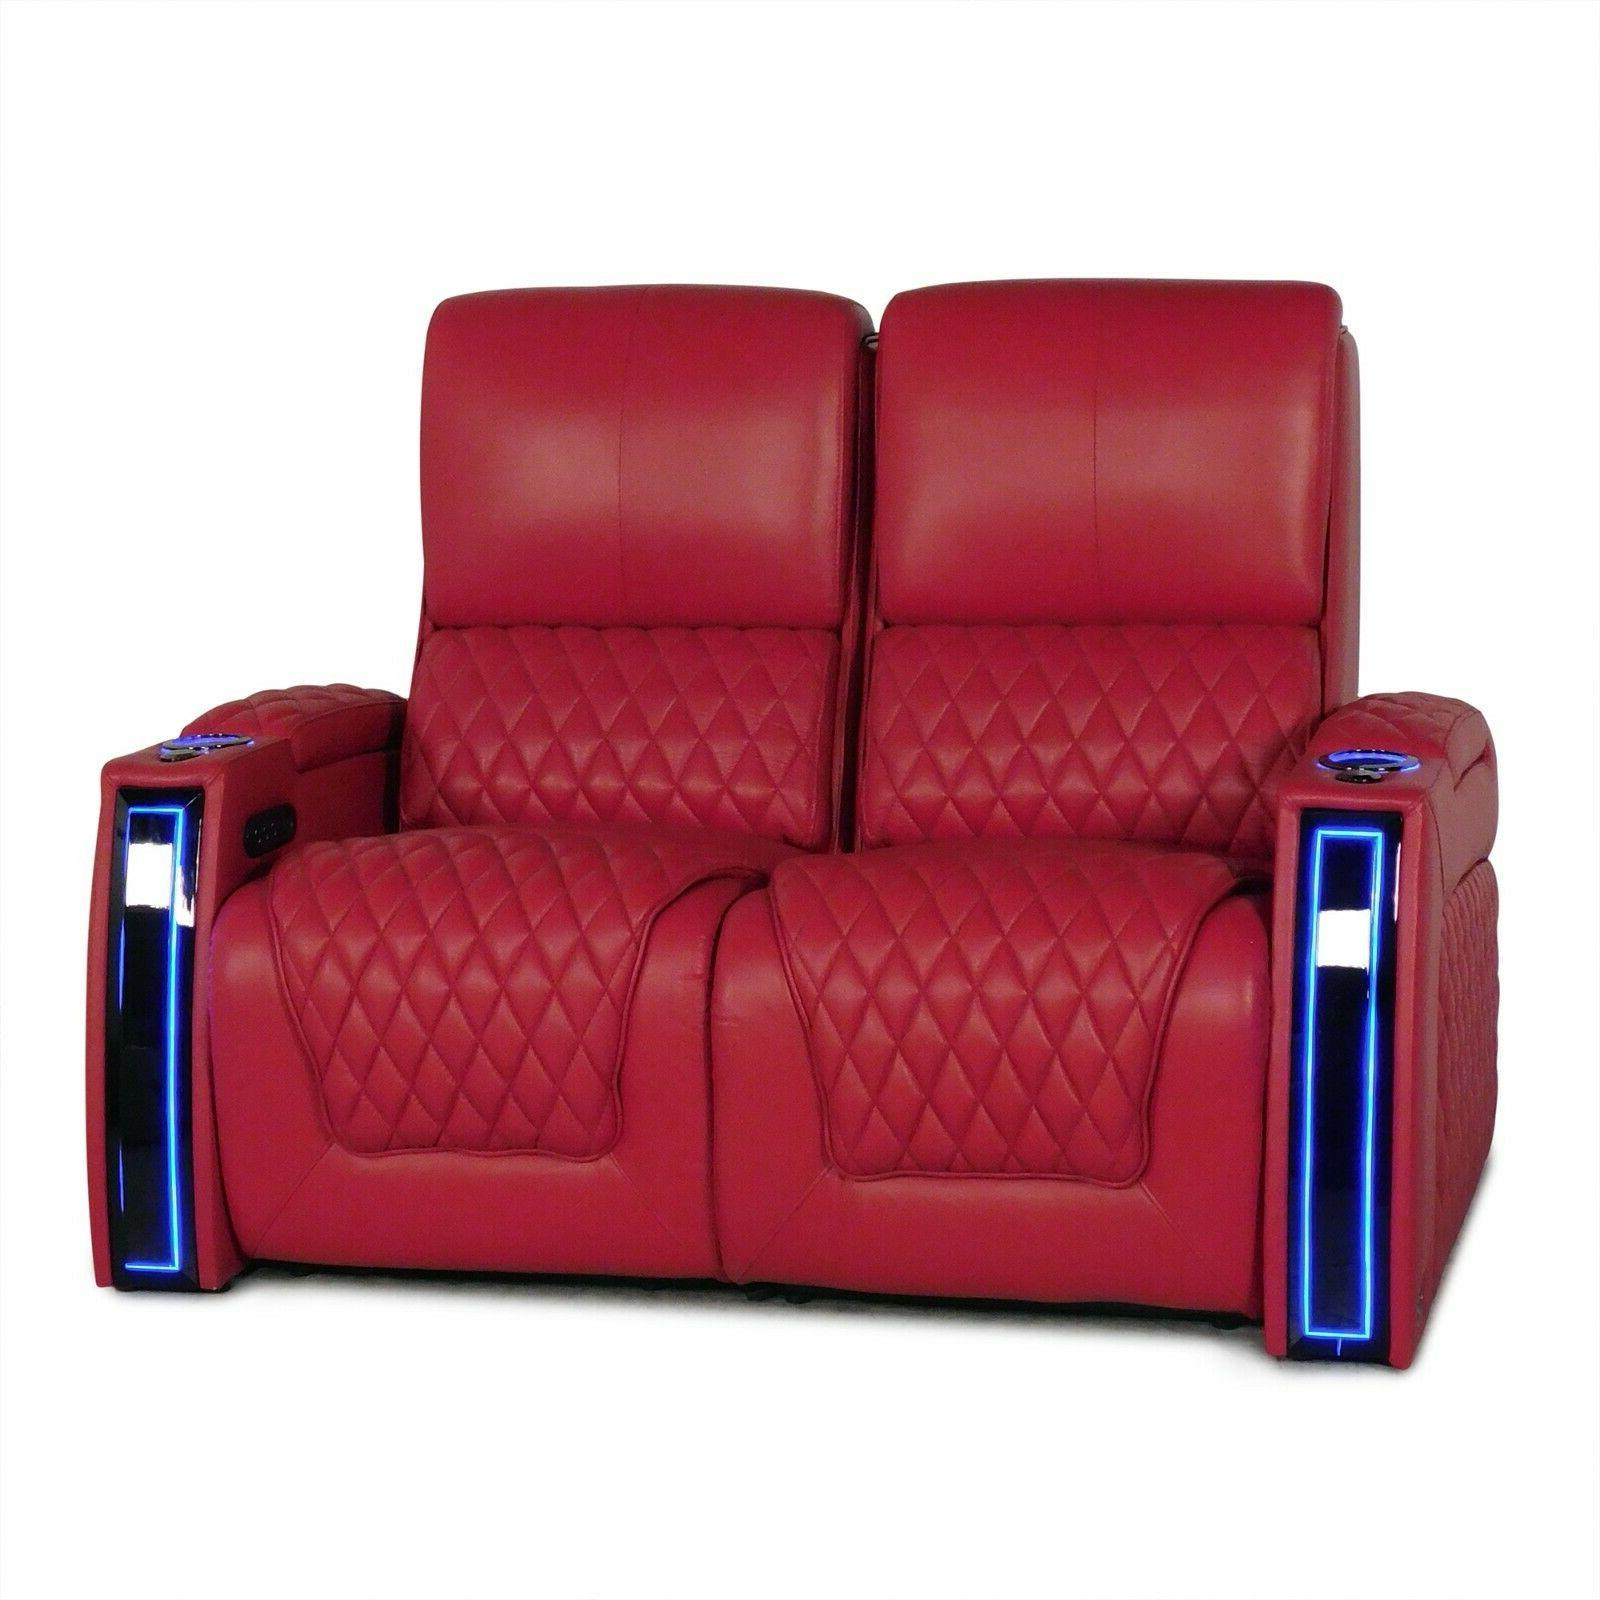 Seatcraft Red Home Theater Chairs Loveseat Power Recliners